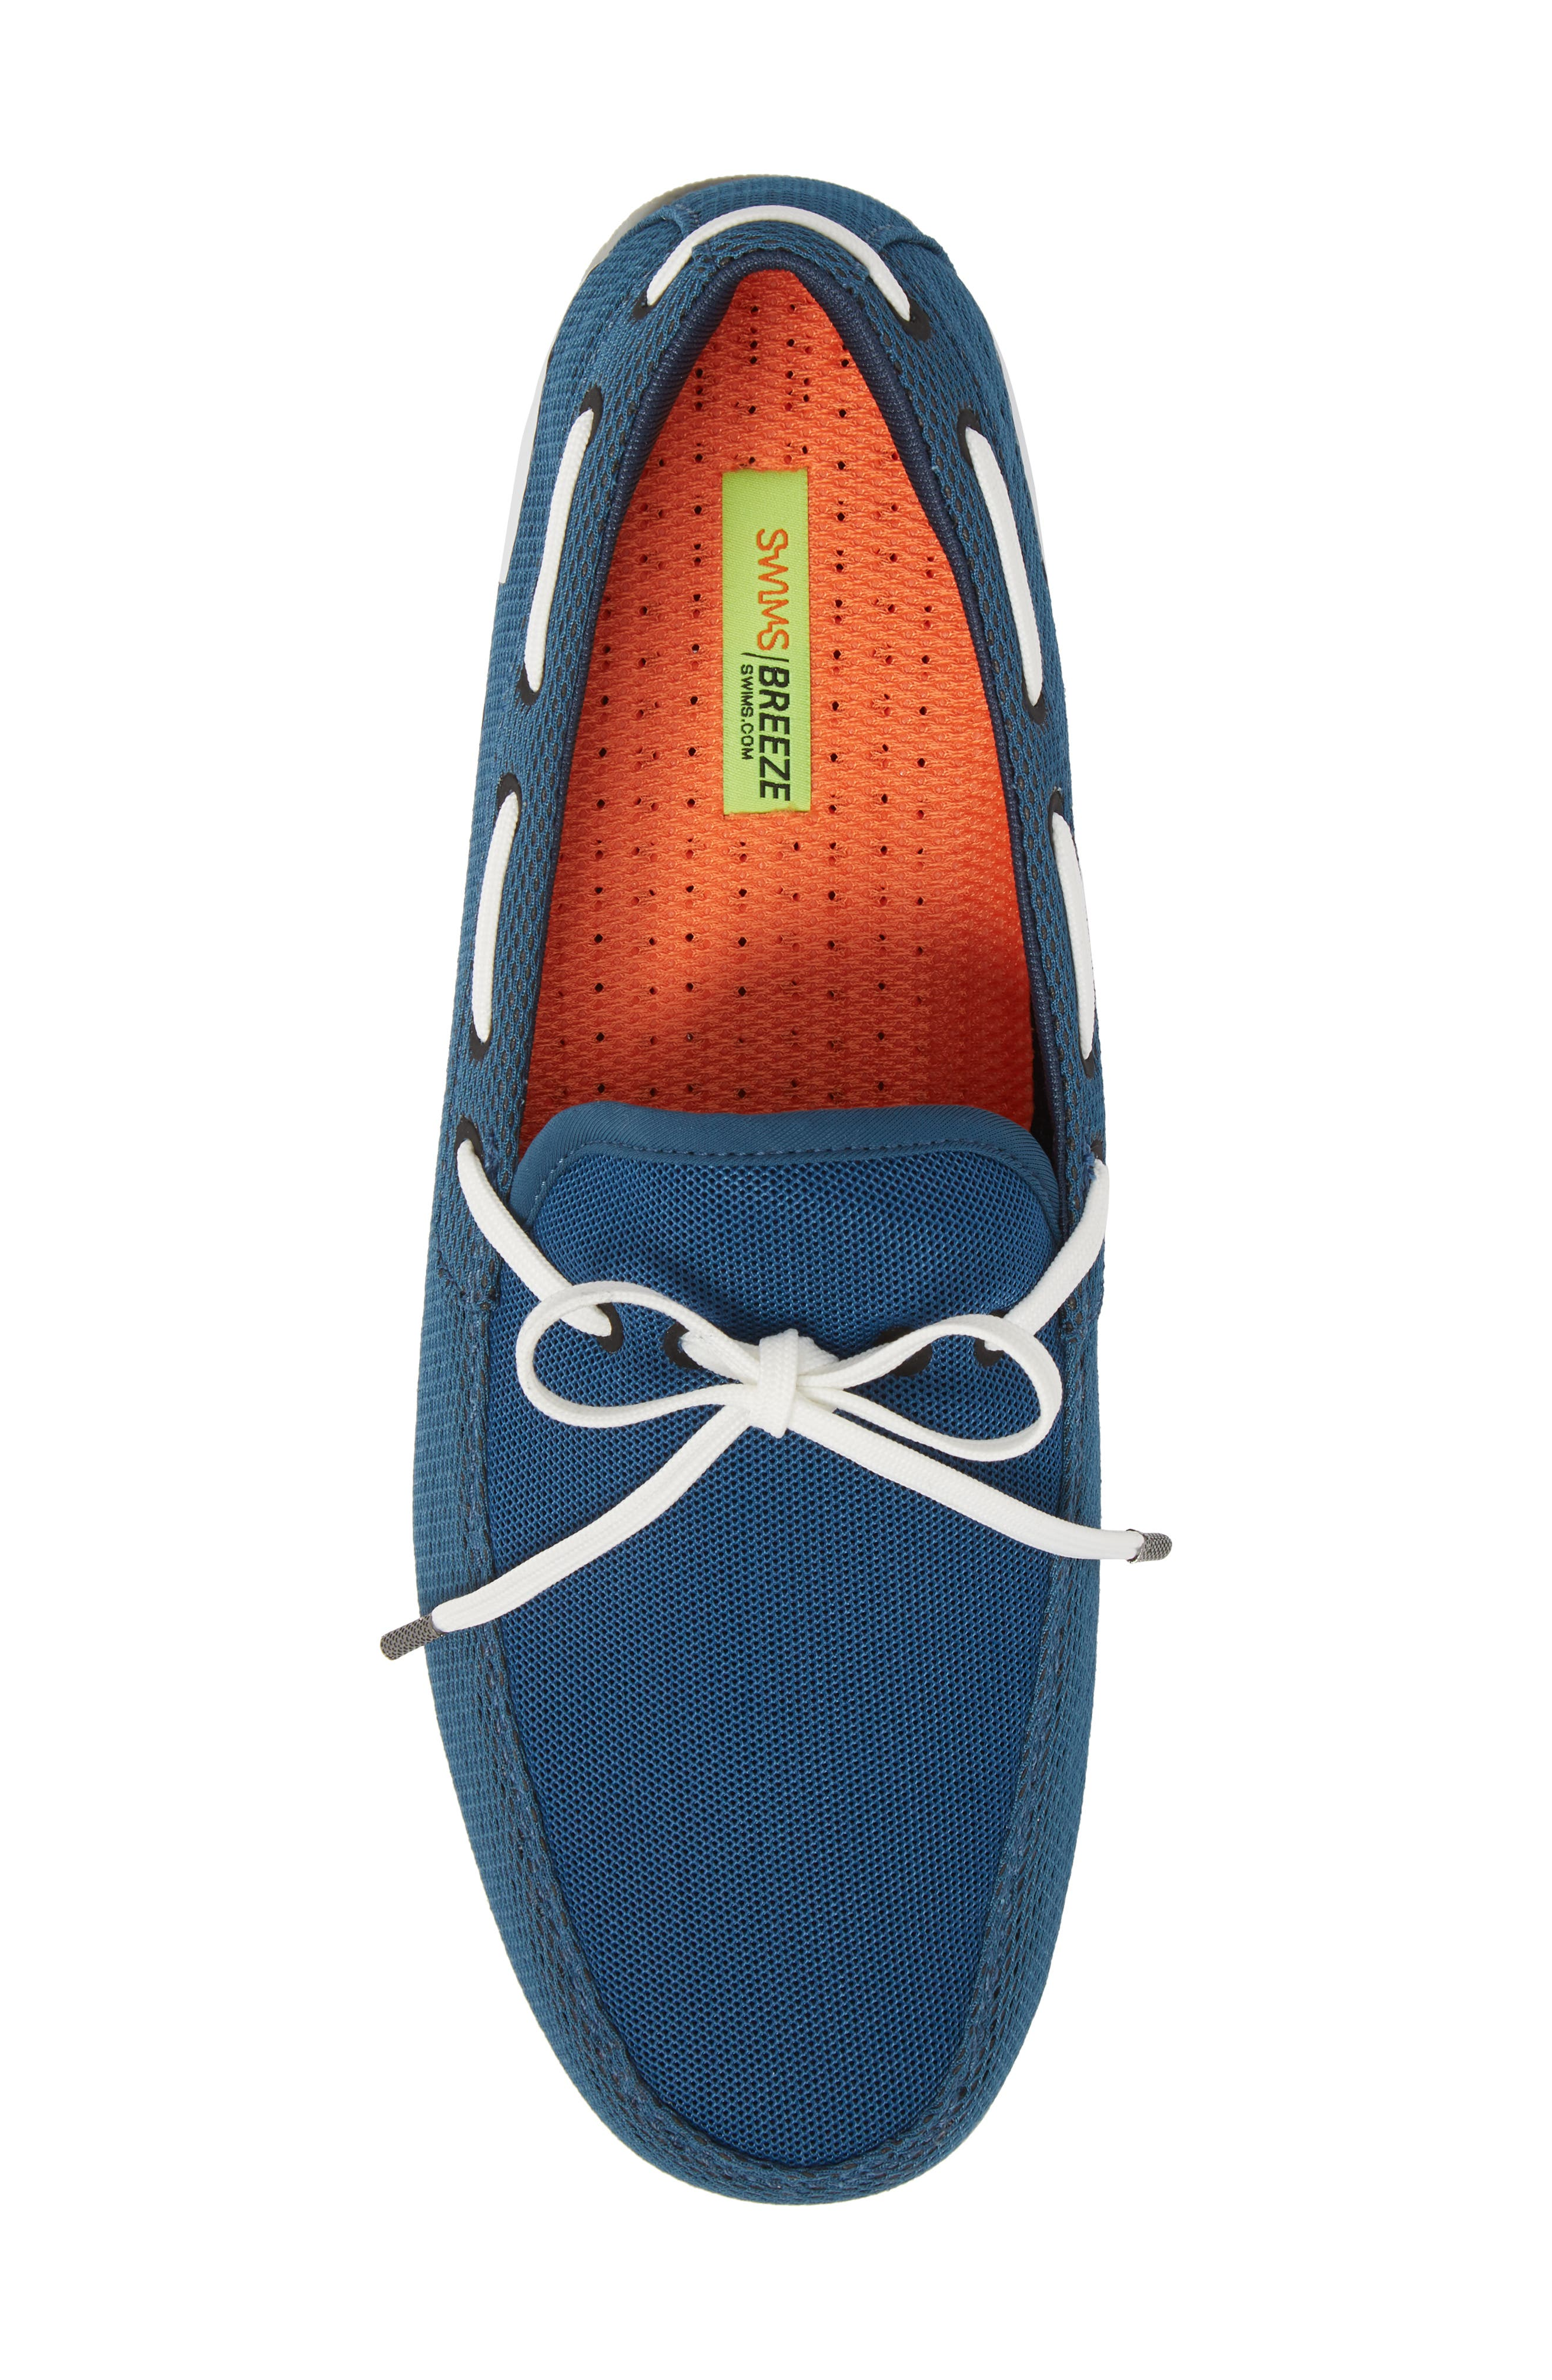 Breeze Loafer,                             Alternate thumbnail 5, color,                             BLUE/ WHITE